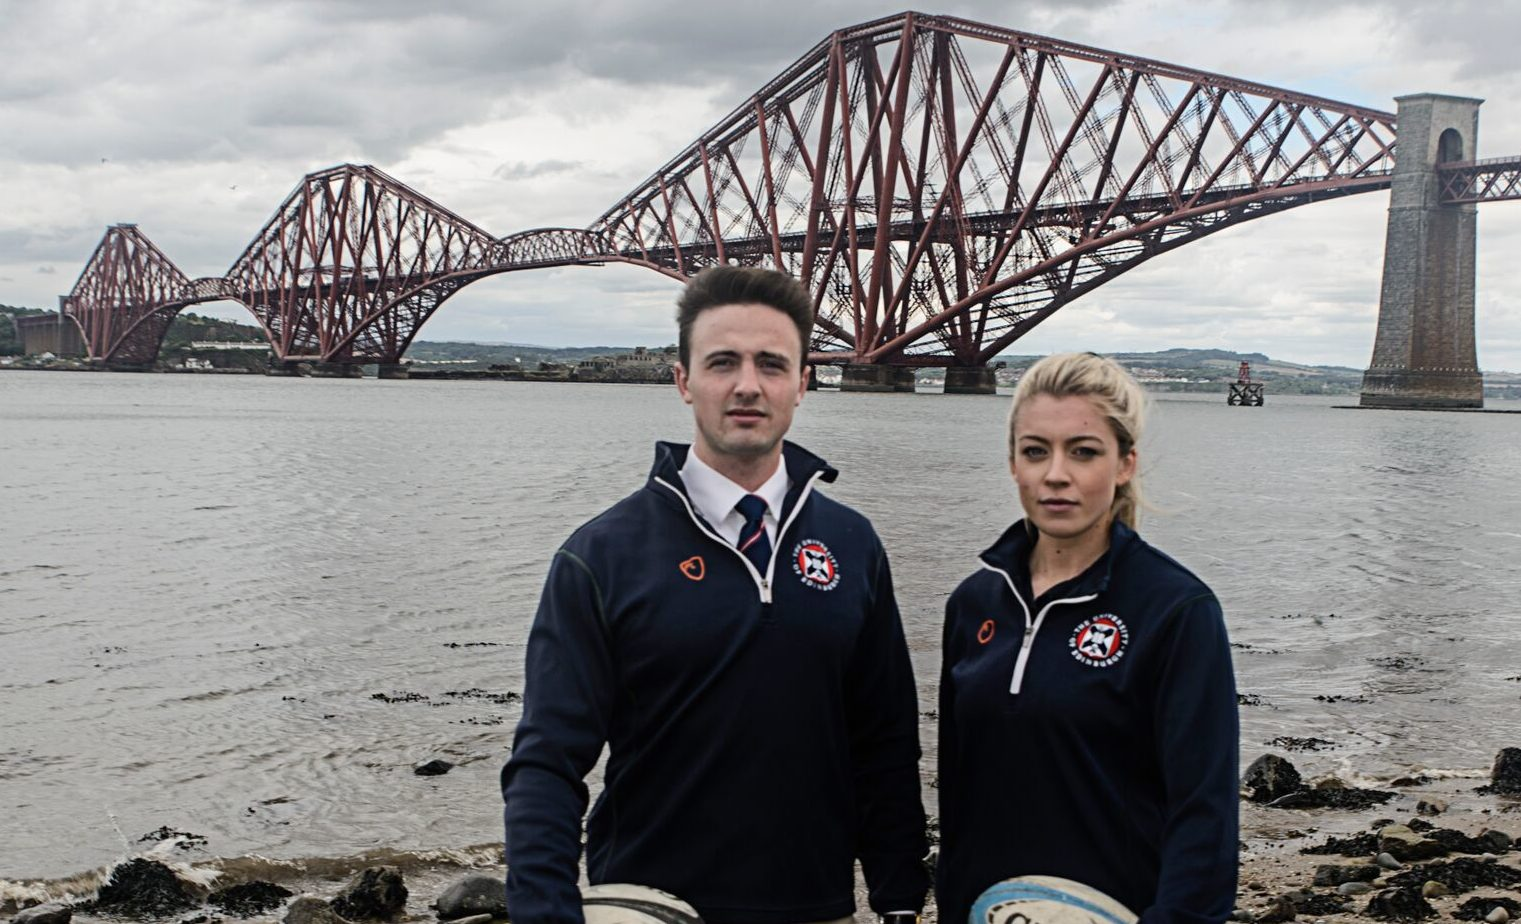 University of St Andrews 1st XV Captains Roland Walker and Amy Parry.